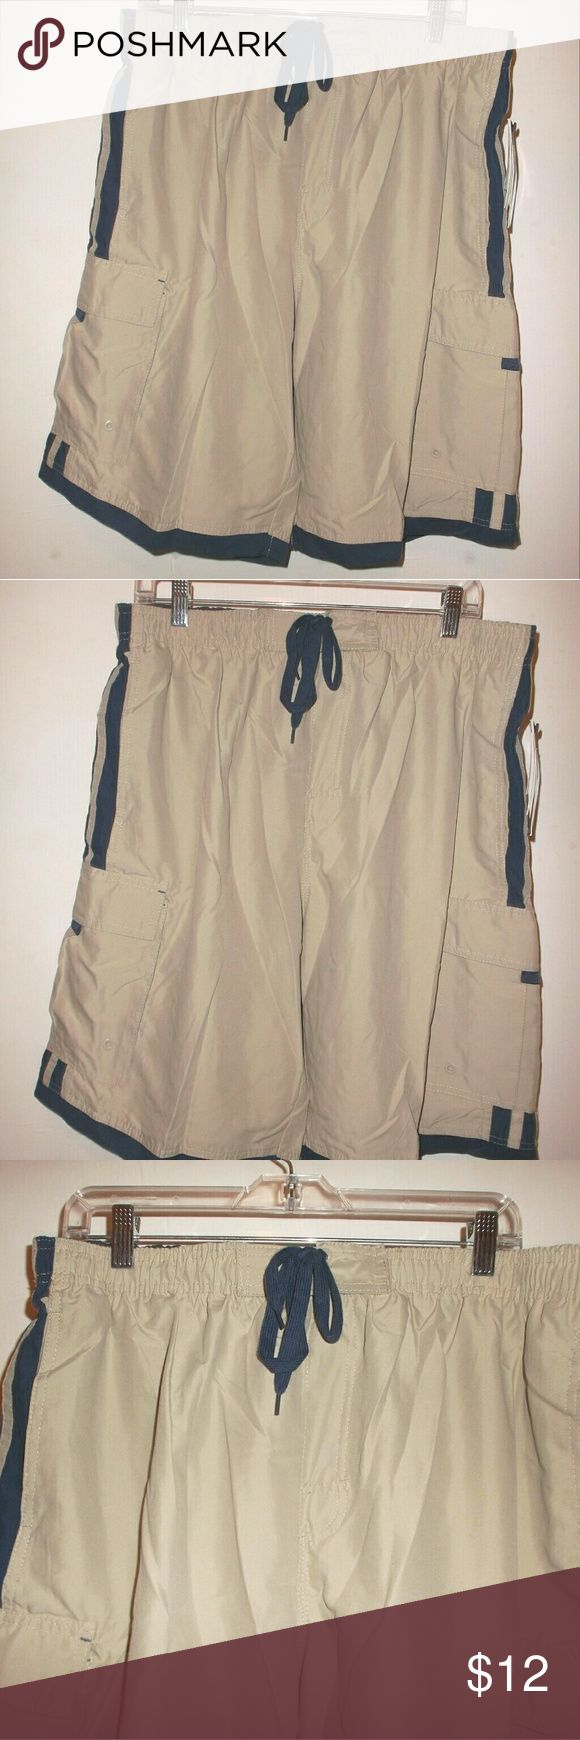 """Quick Dry Swim Trunks Mens Large NWT A new with tags pair of Burnside swim Trunks!   Mens size Large.   100 % polyester quick dry fabric.   Beige in color called """"stone"""" on the tag.   Front pockets and Velcro close leg pockets.   Mesh underwear lined.   Inseam is 10 inches   Bundle and save 20 %! Burnside Swim Swim Trunks"""